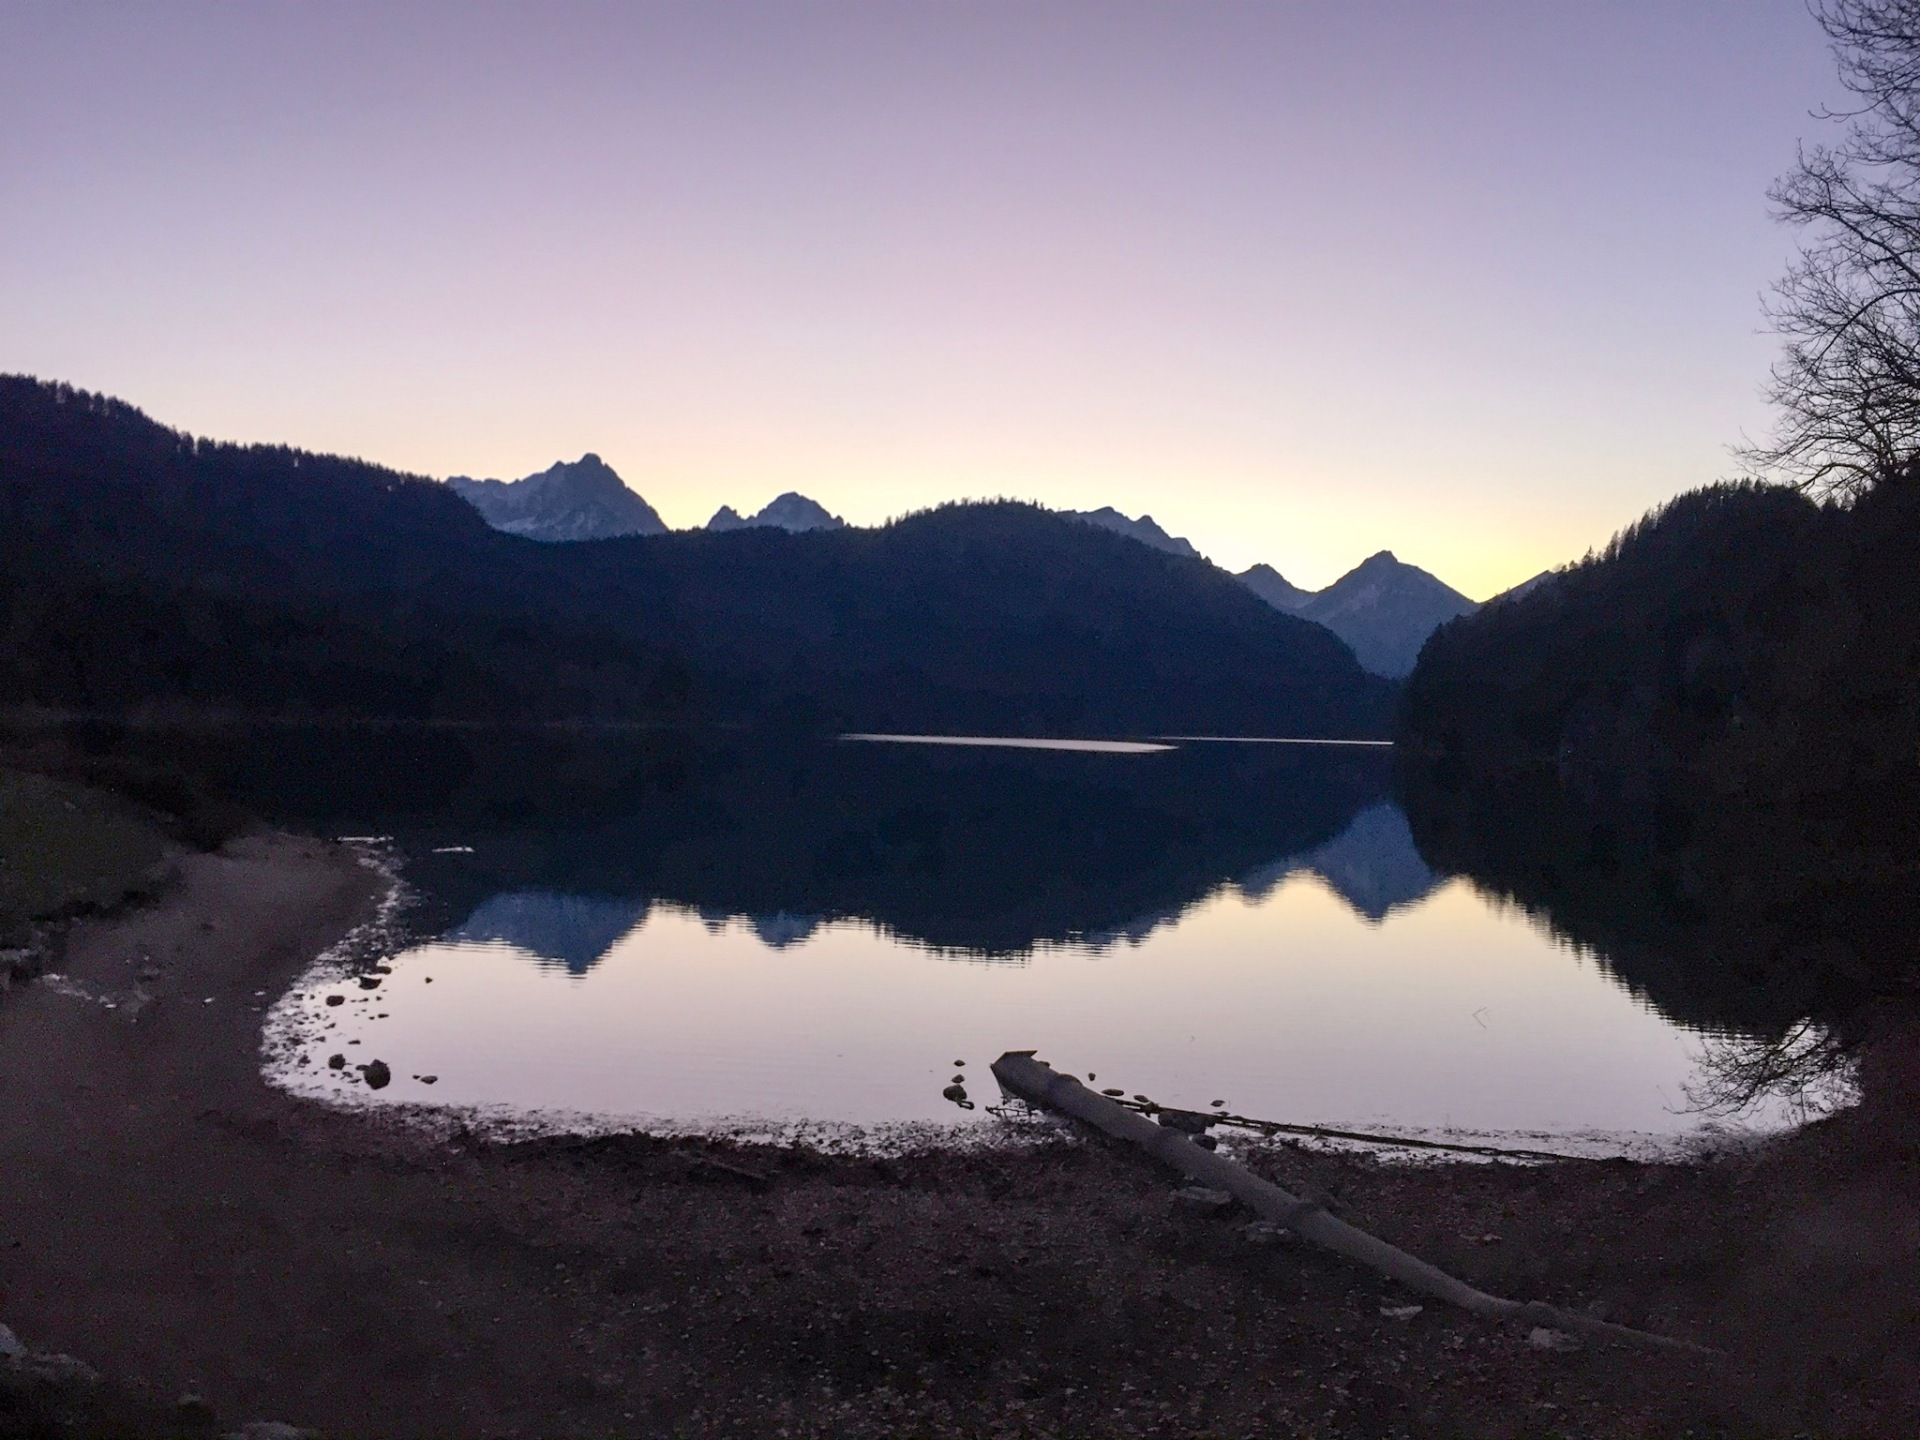 Sunset over a lake in Bavaria